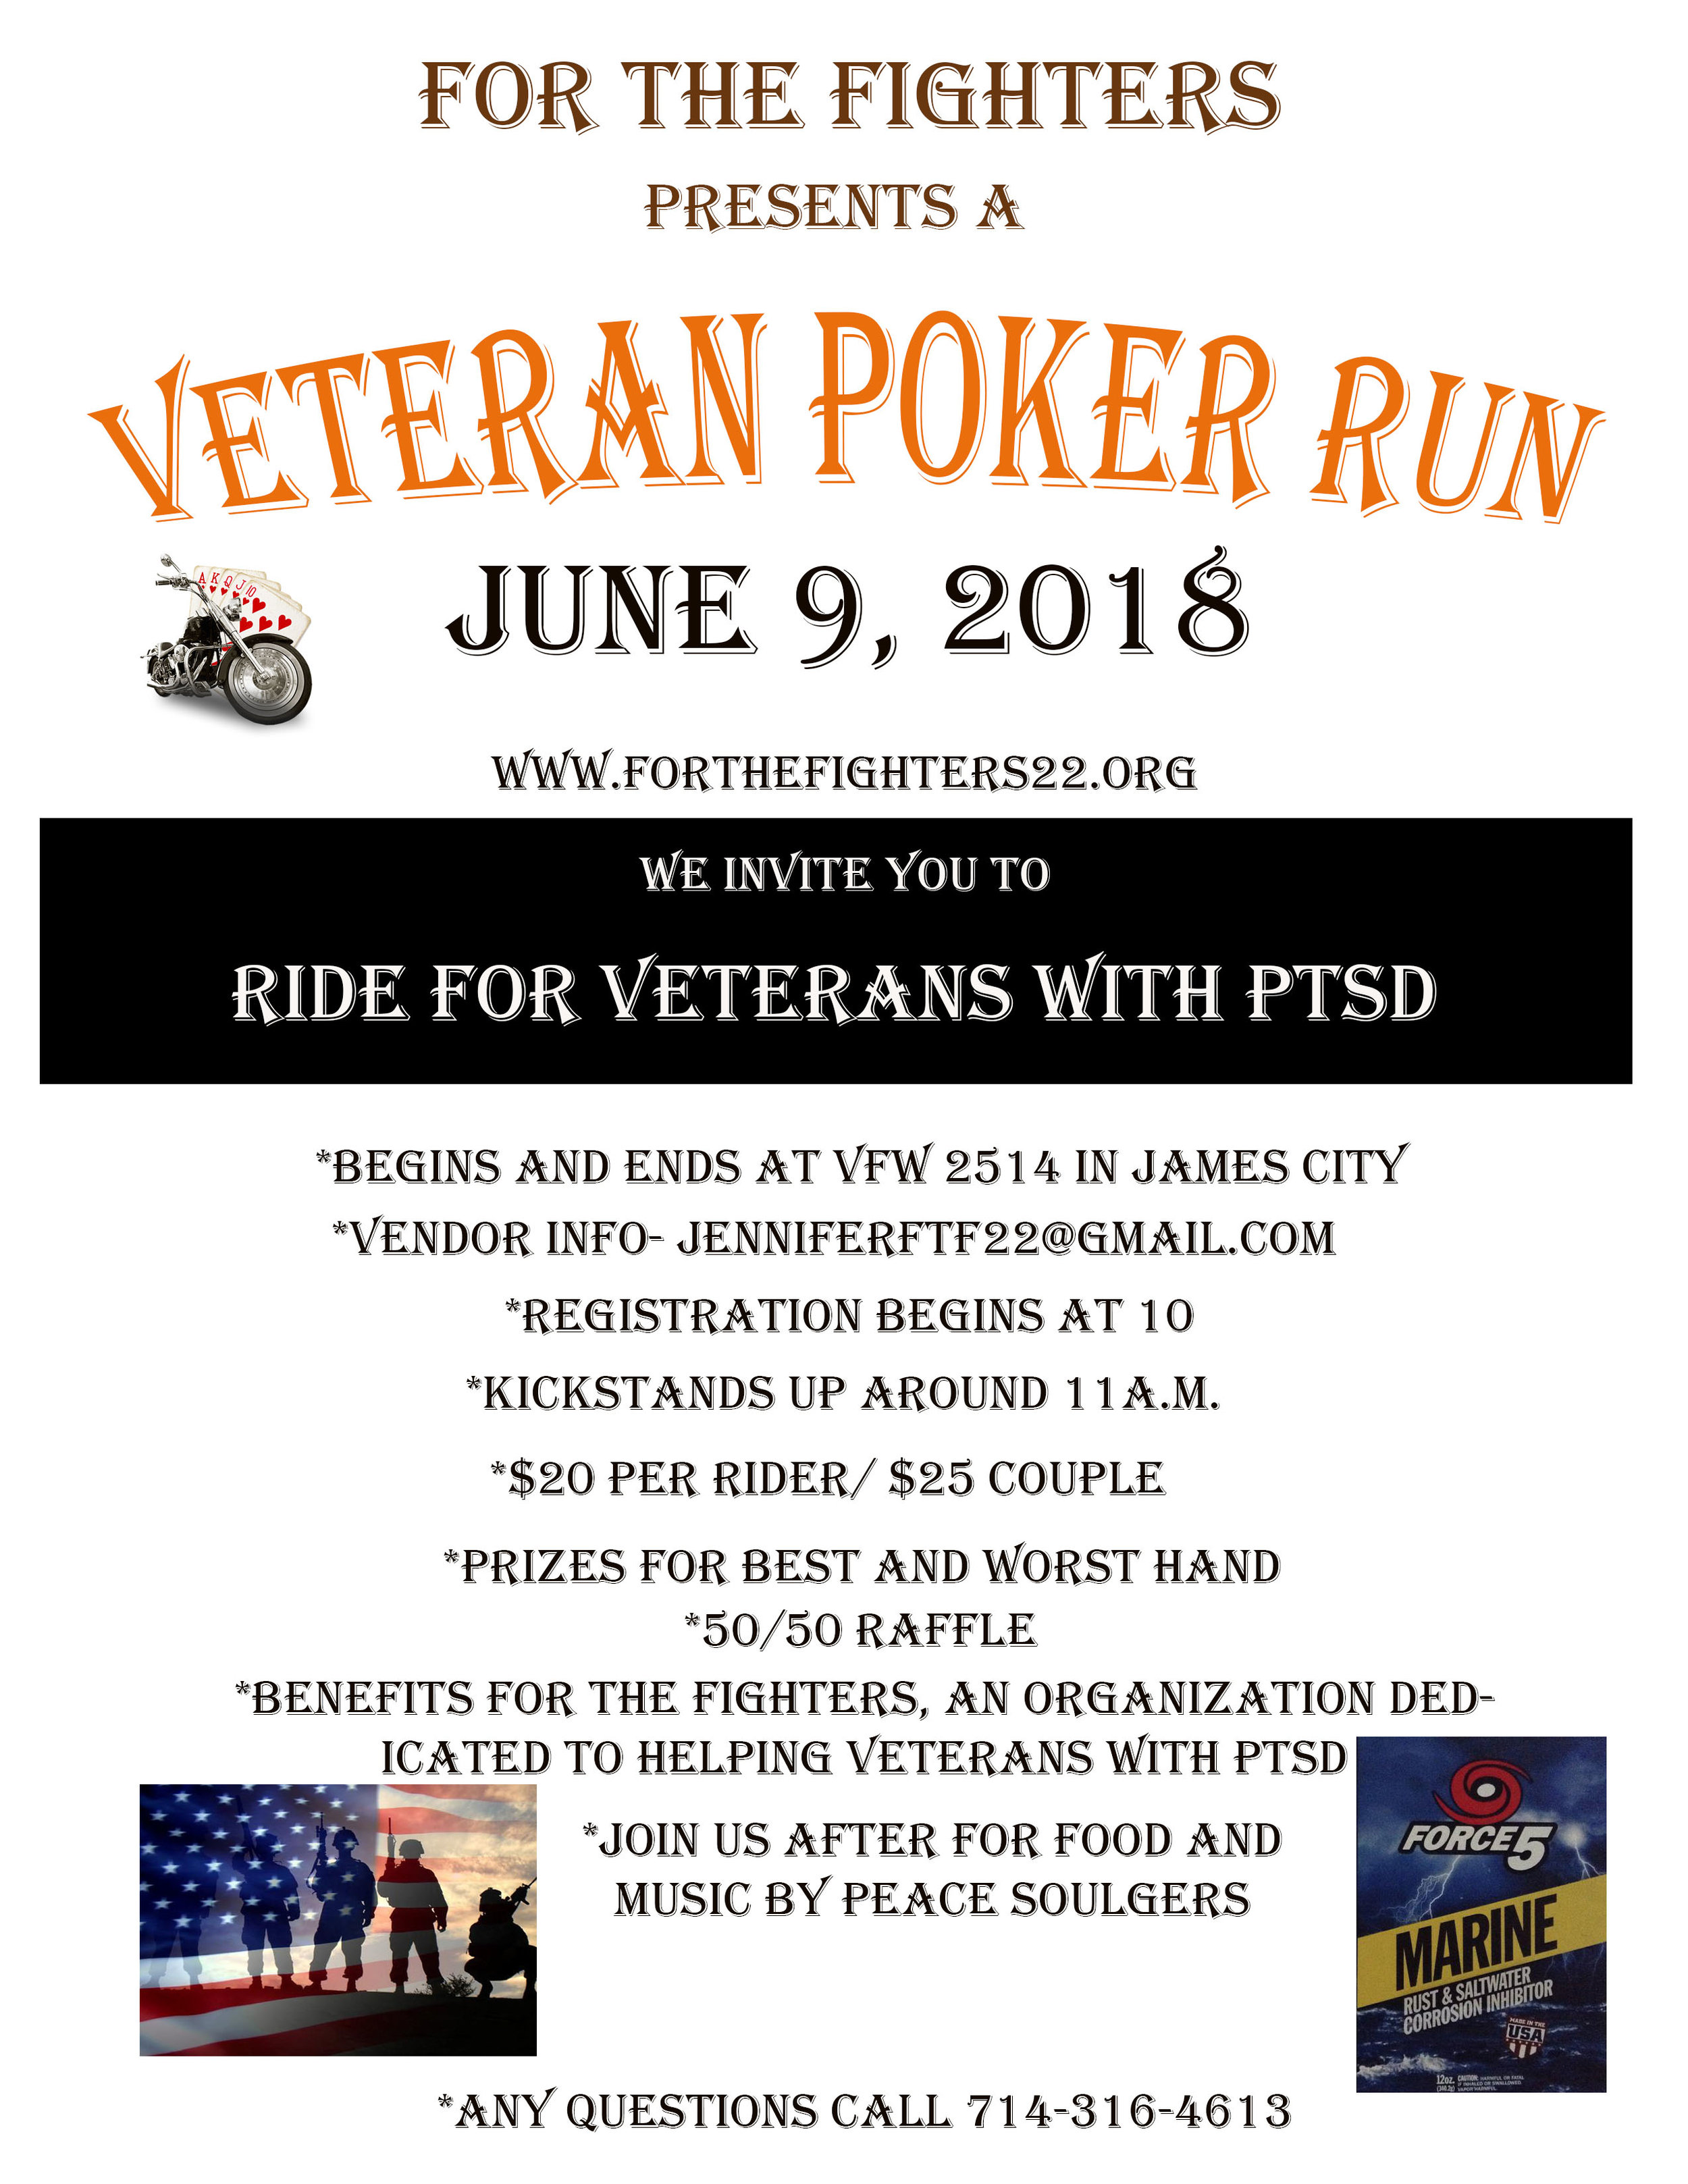 poker run flyer edit1.jpg